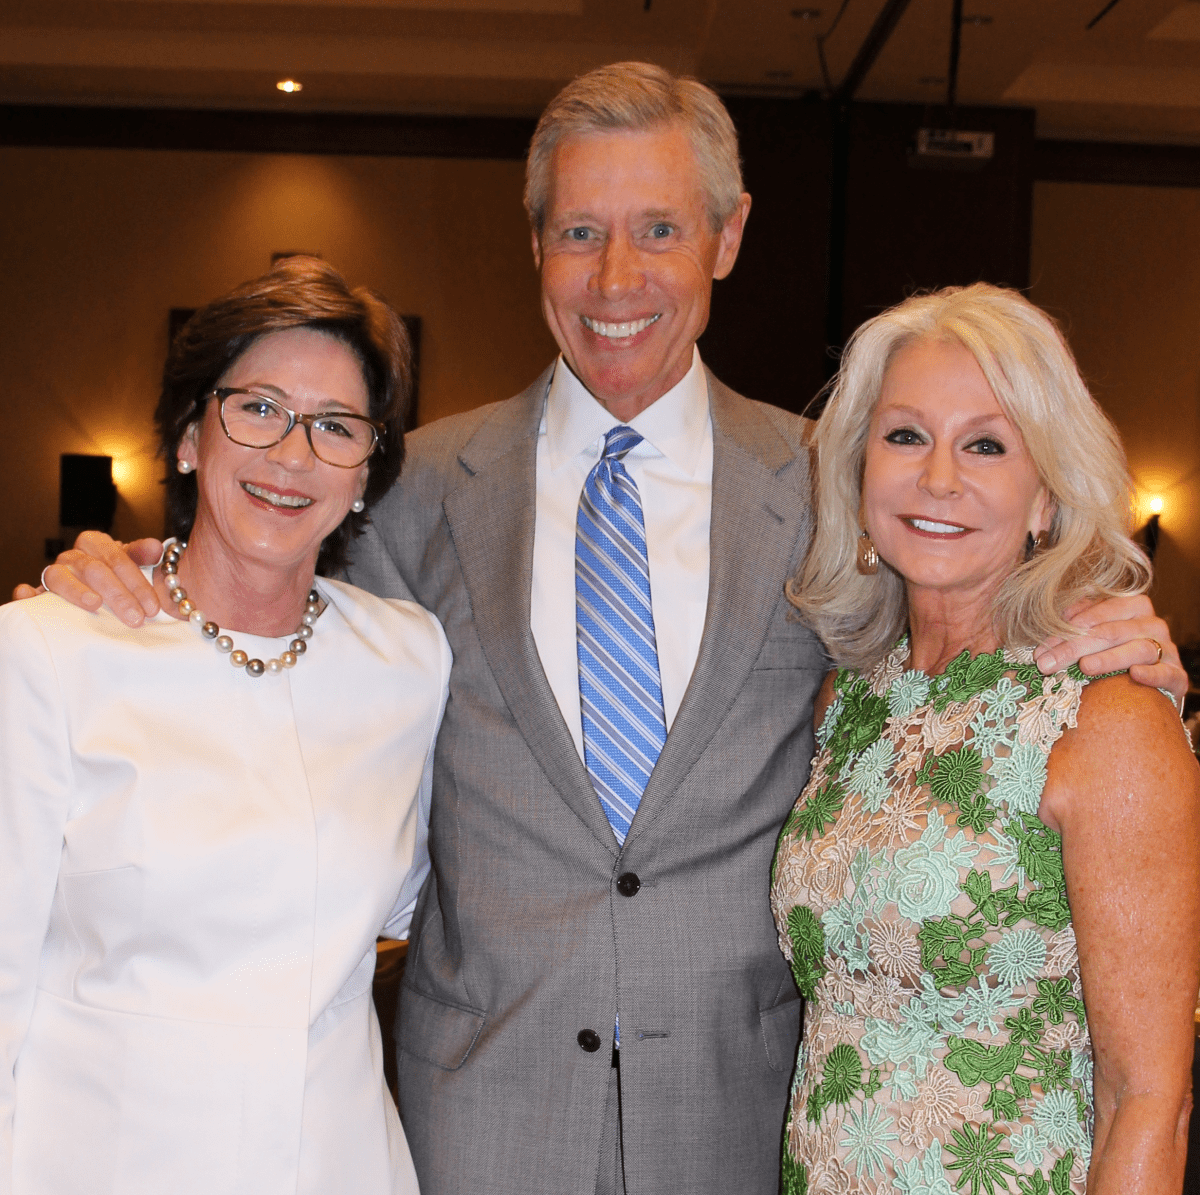 Brookwood luncheon, Stephanie Tucker, Steve Beasley, Nancy Beasley